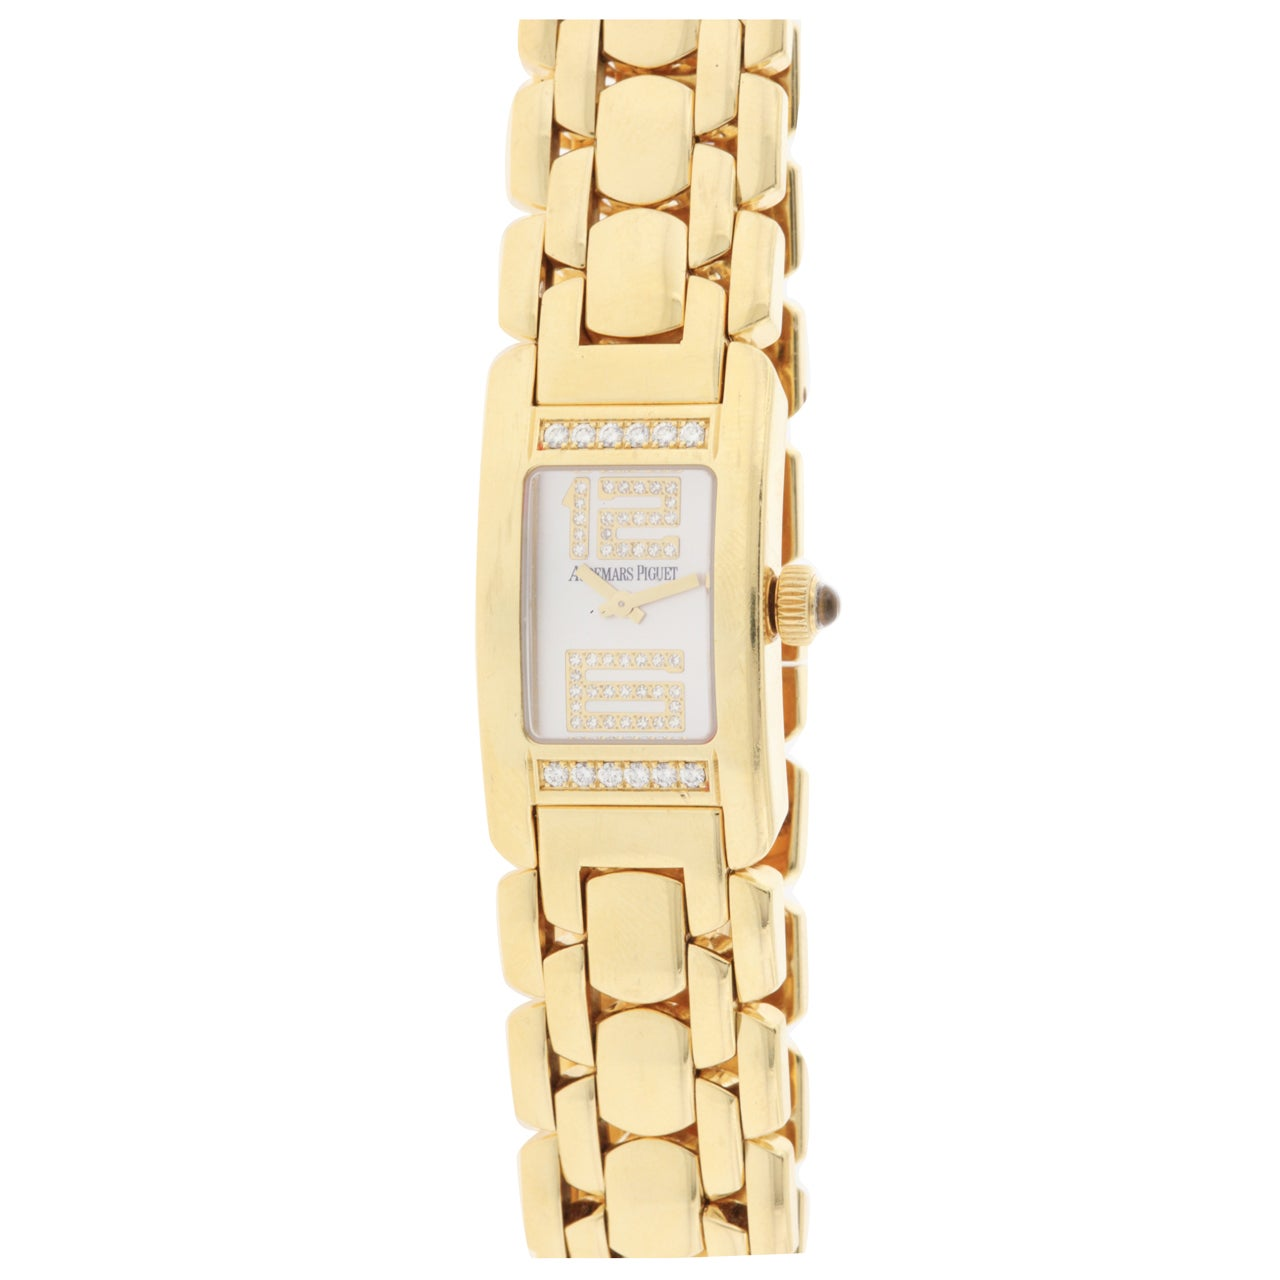 Audemars Piguet Lady's Yellow Gold and Diamond Promesse Bracelet Watch 1